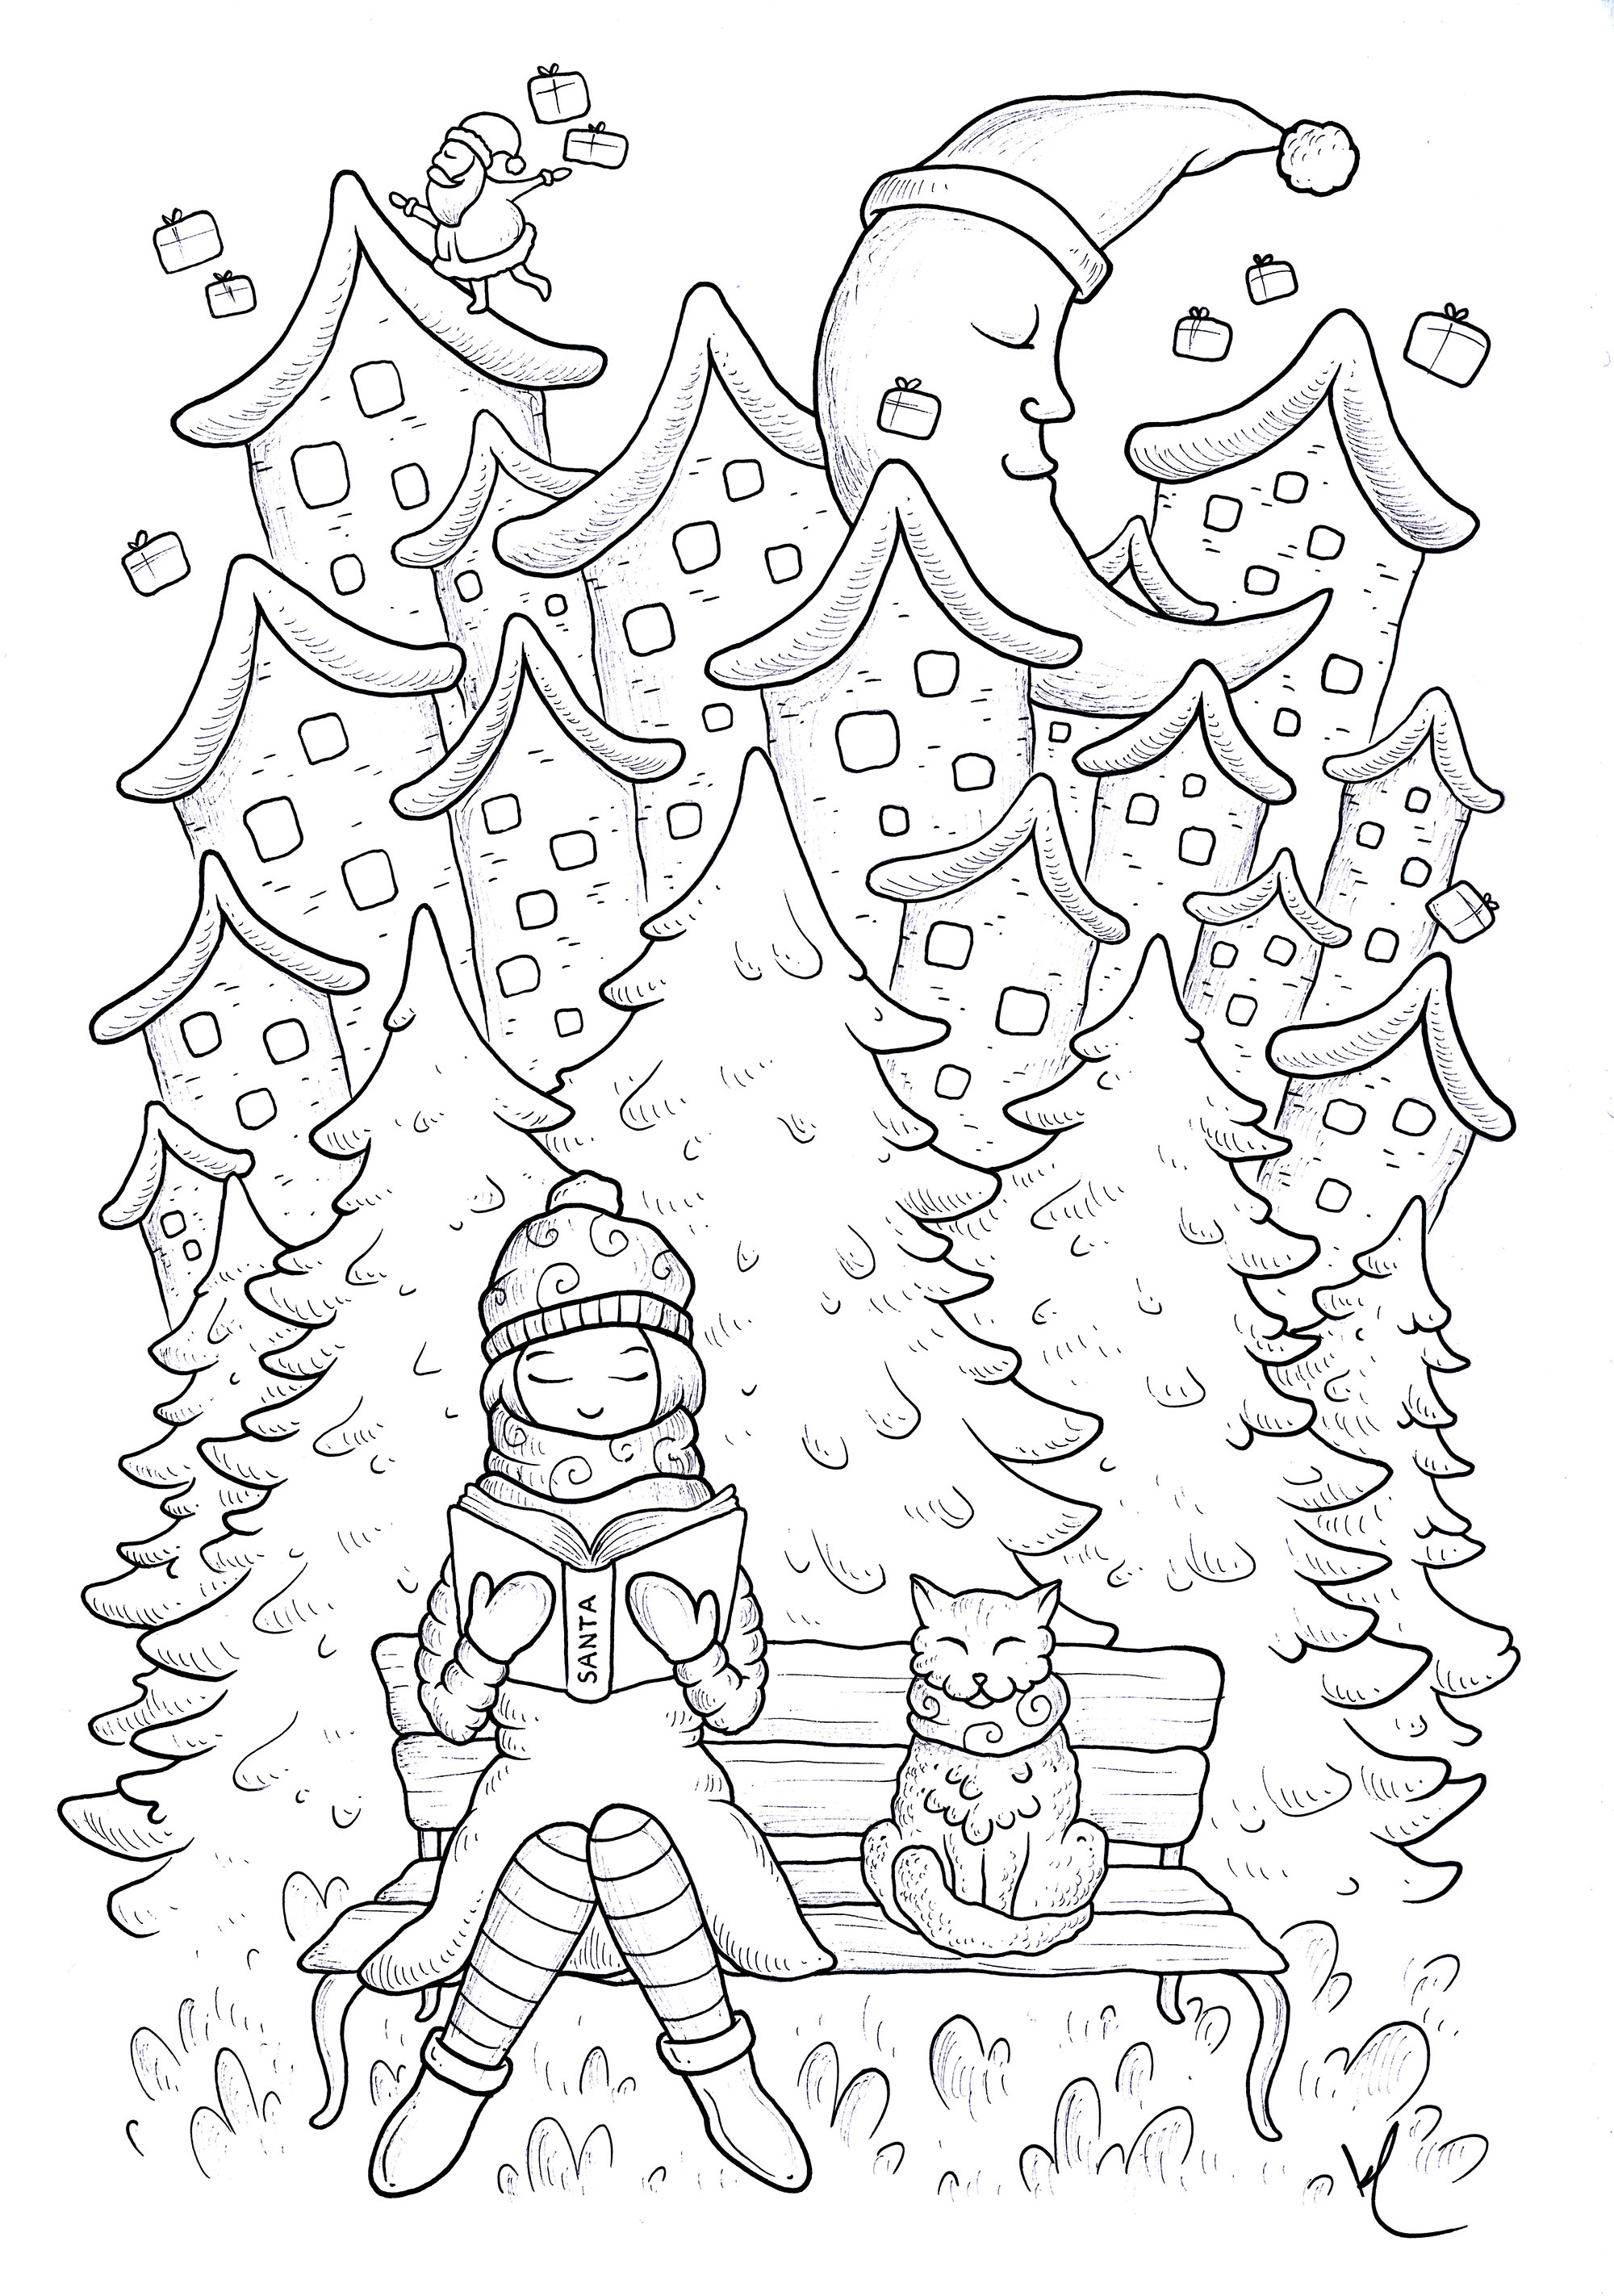 Santa claus - Coloring Pages for Adults